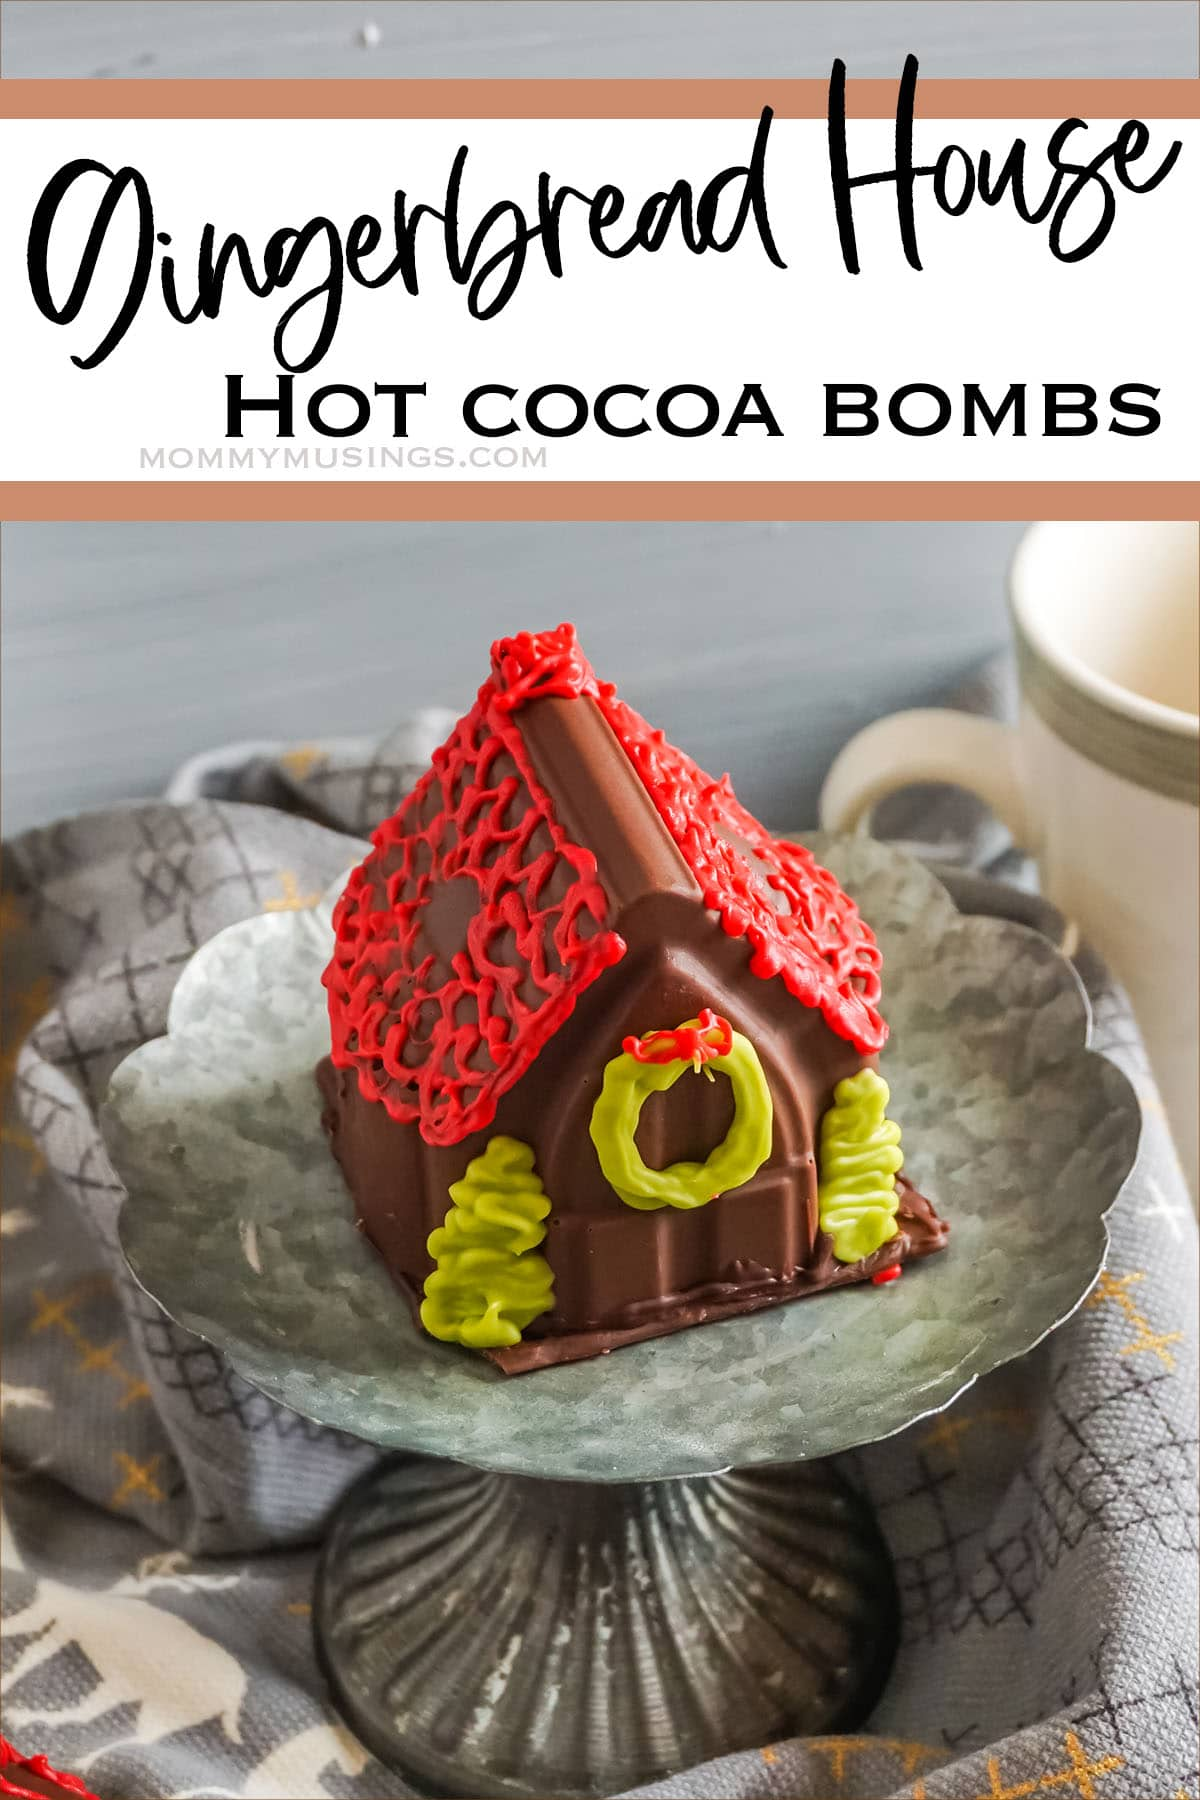 gingerbread house hot chocolate bomb on a cupcake stand with text which reads Gingerbread House Hot Cocoa Bombs